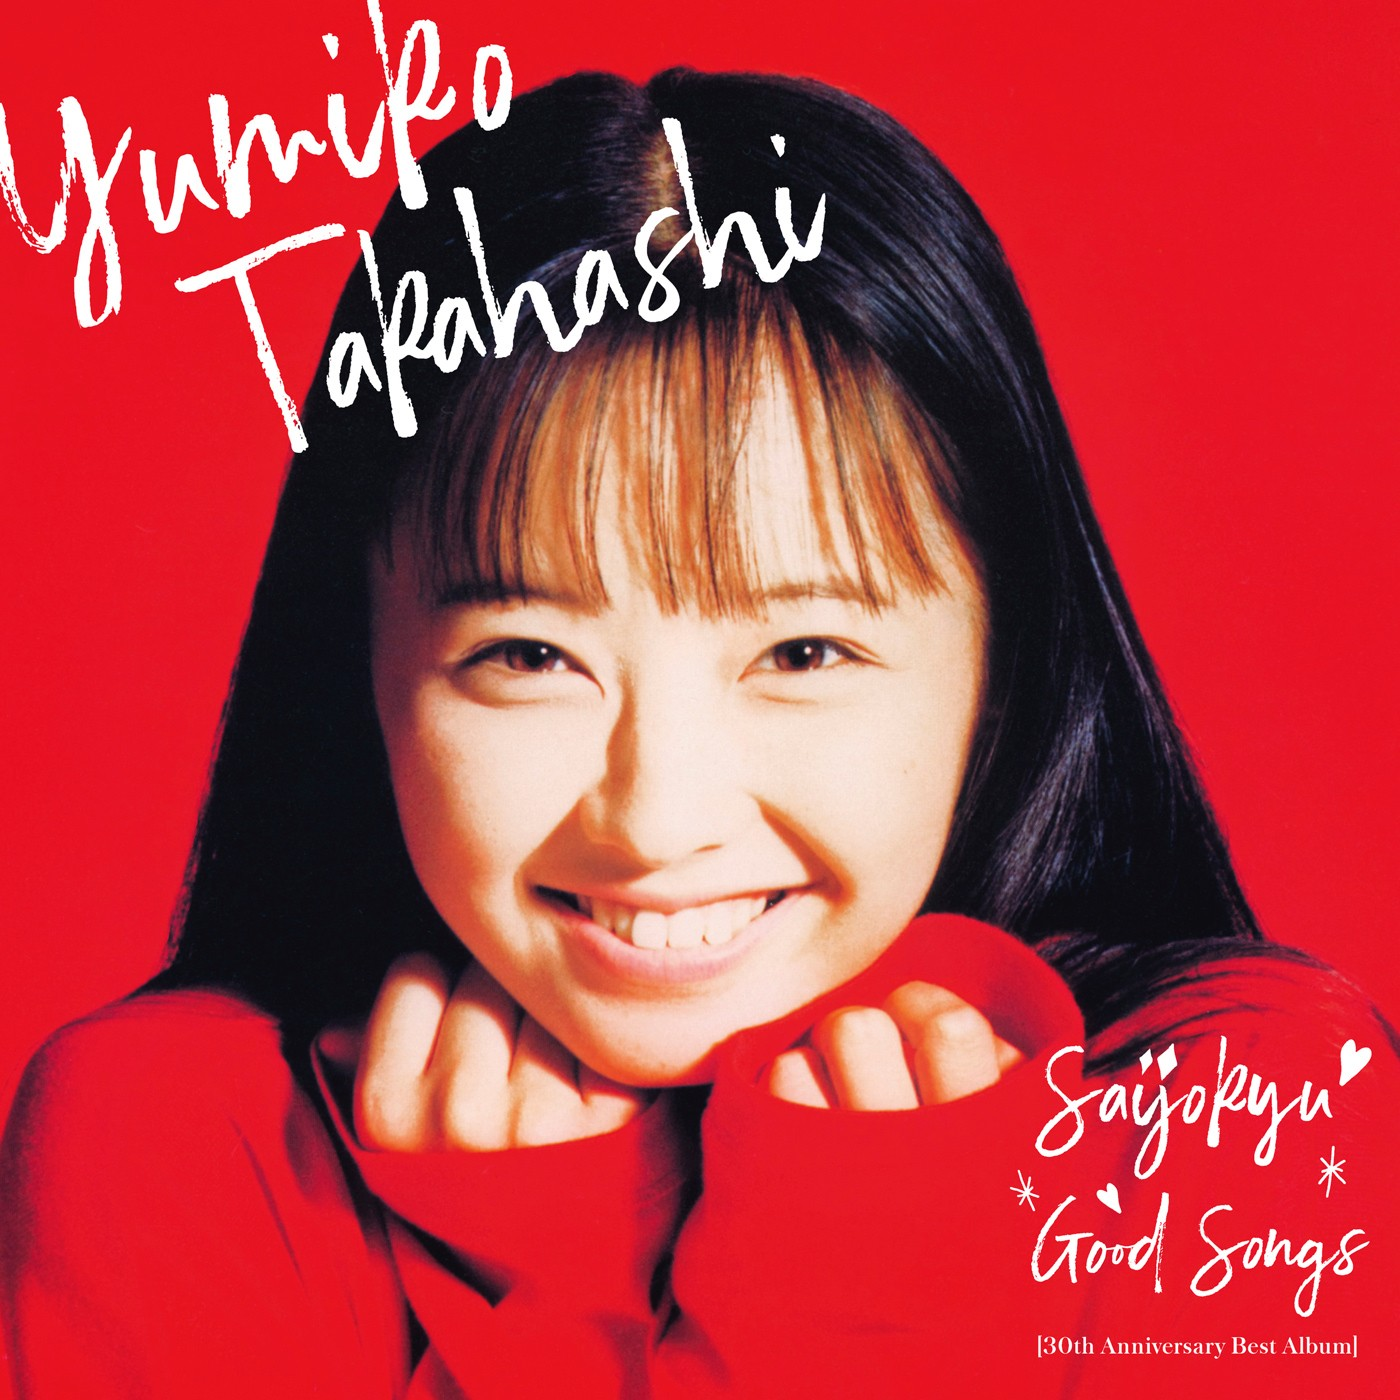 高橋由美子 (Yumiko Takahashi) – 最上級 GOOD SONGS [30th Anniversary Best Album] [FLAC / CD] [2020.10.28]